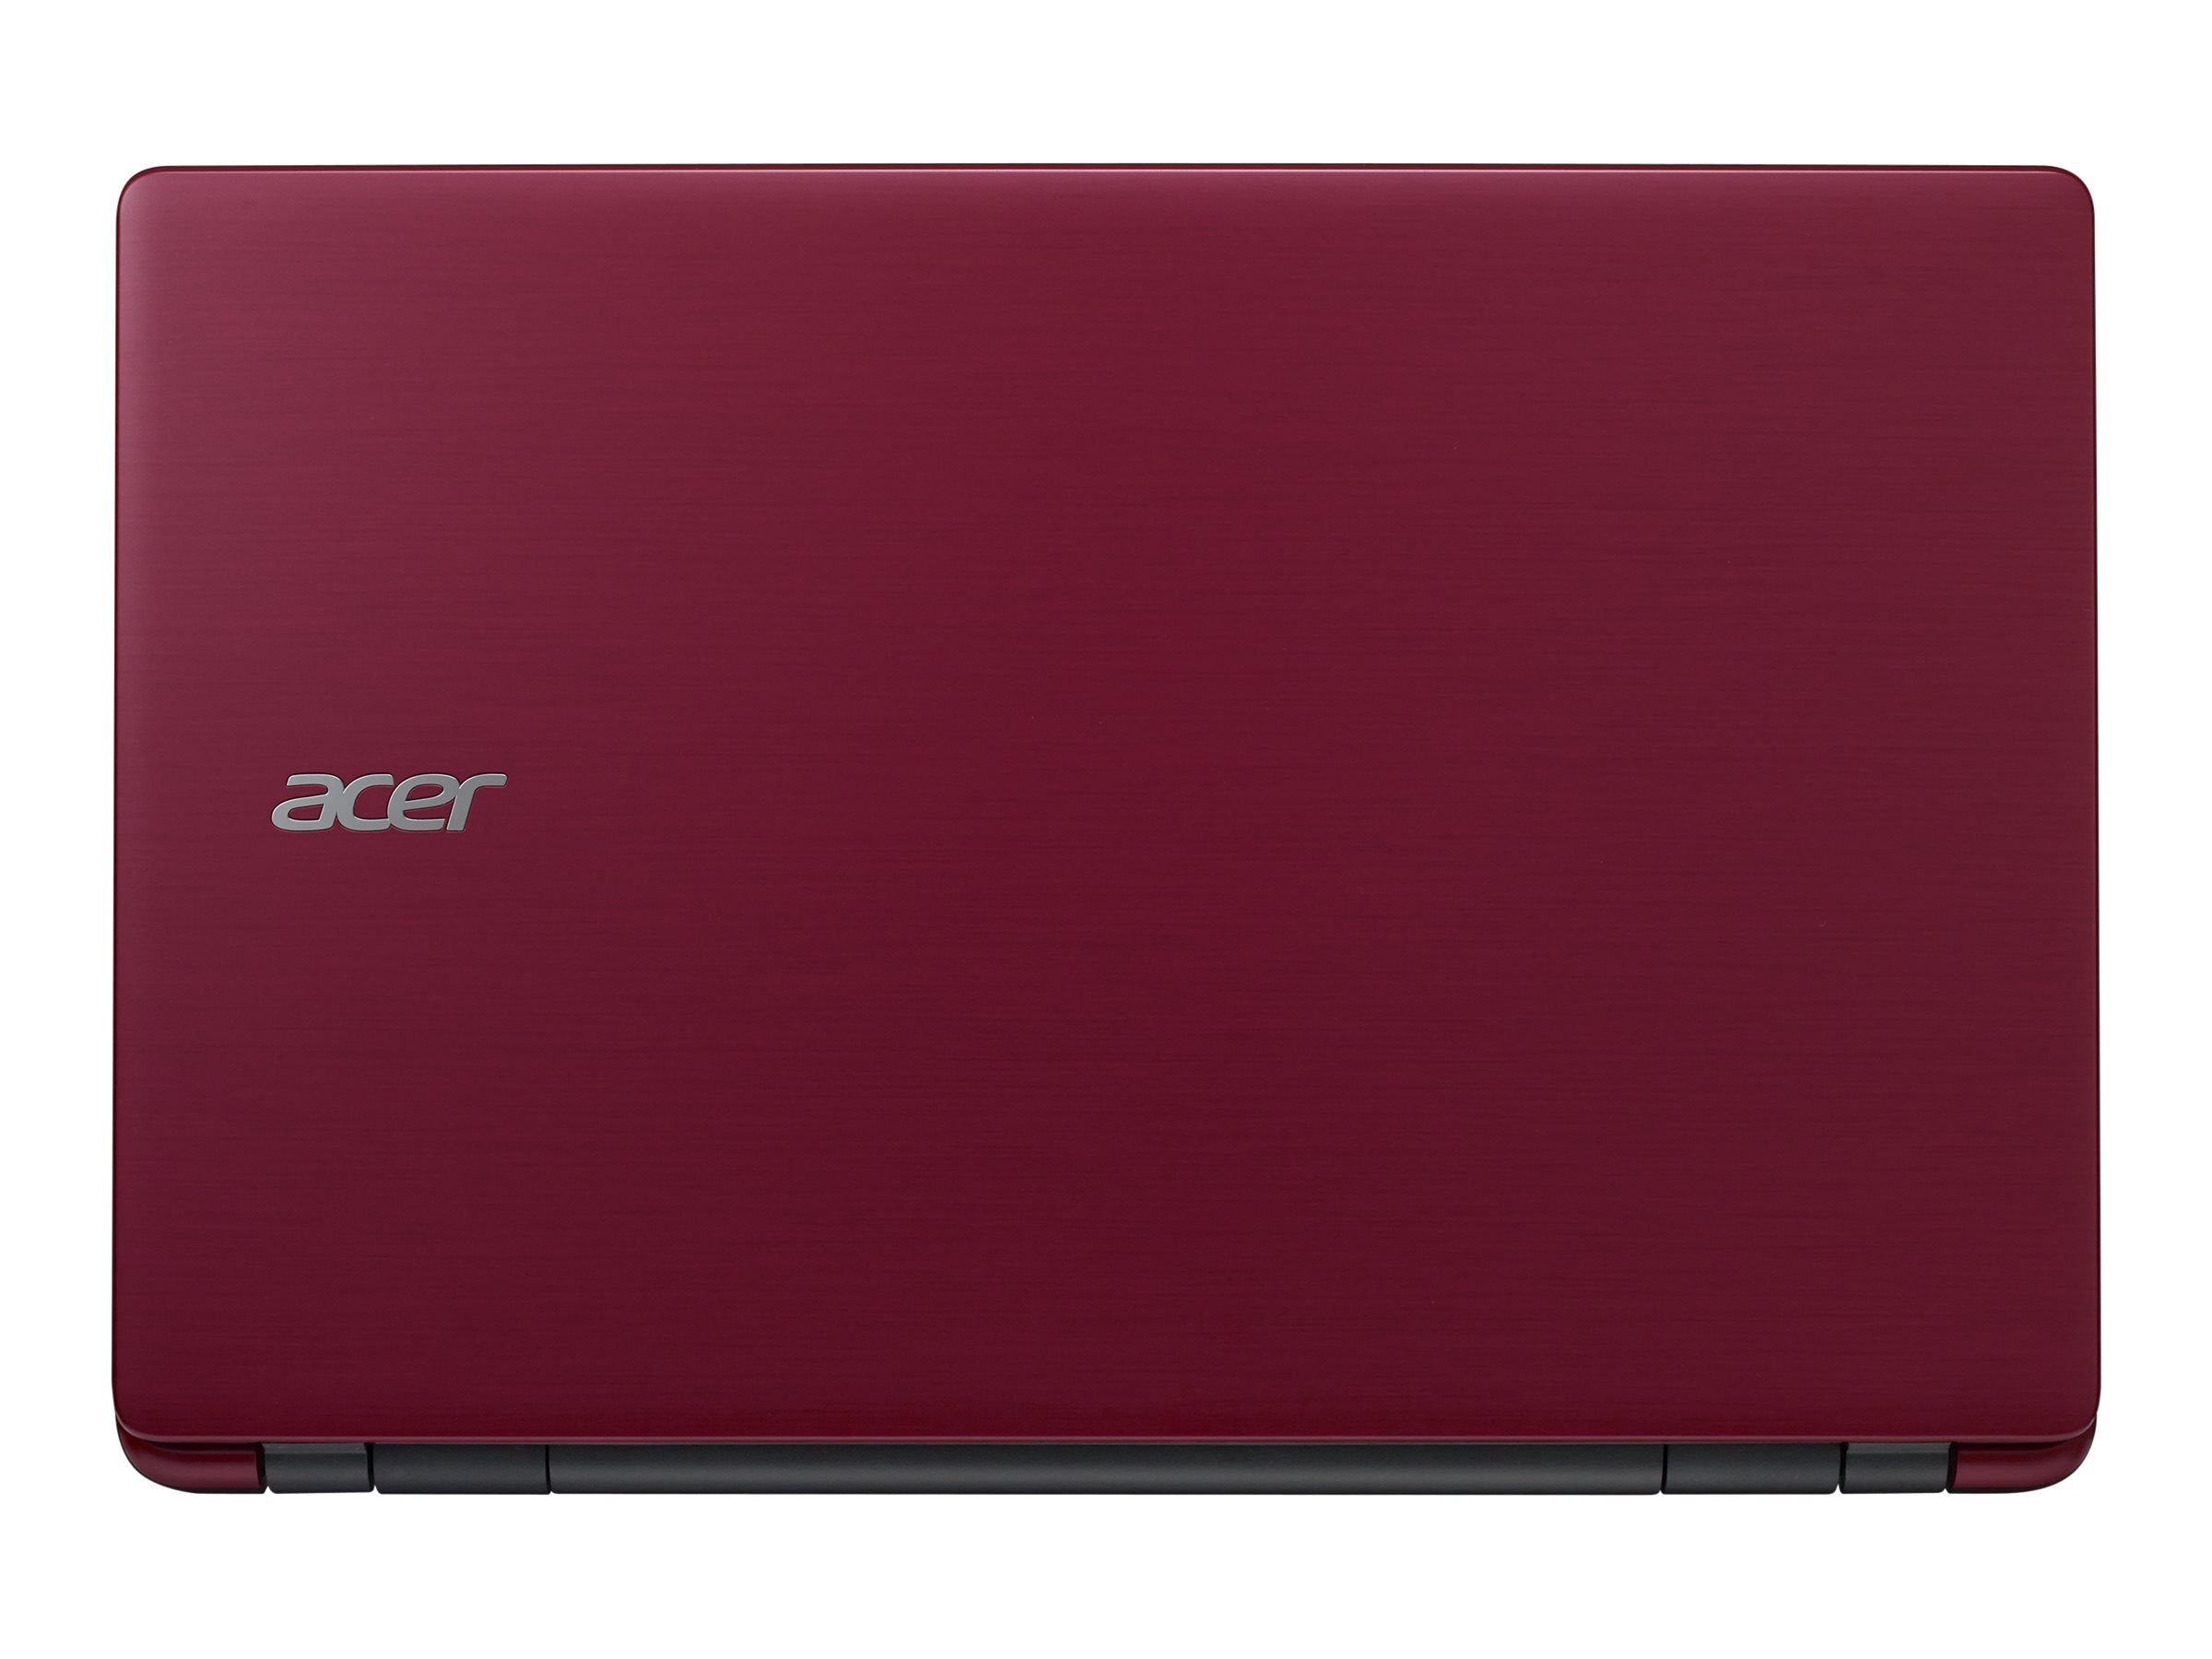 Acer E5-511 15.6 Notebook PC, NX.MPLAA.002